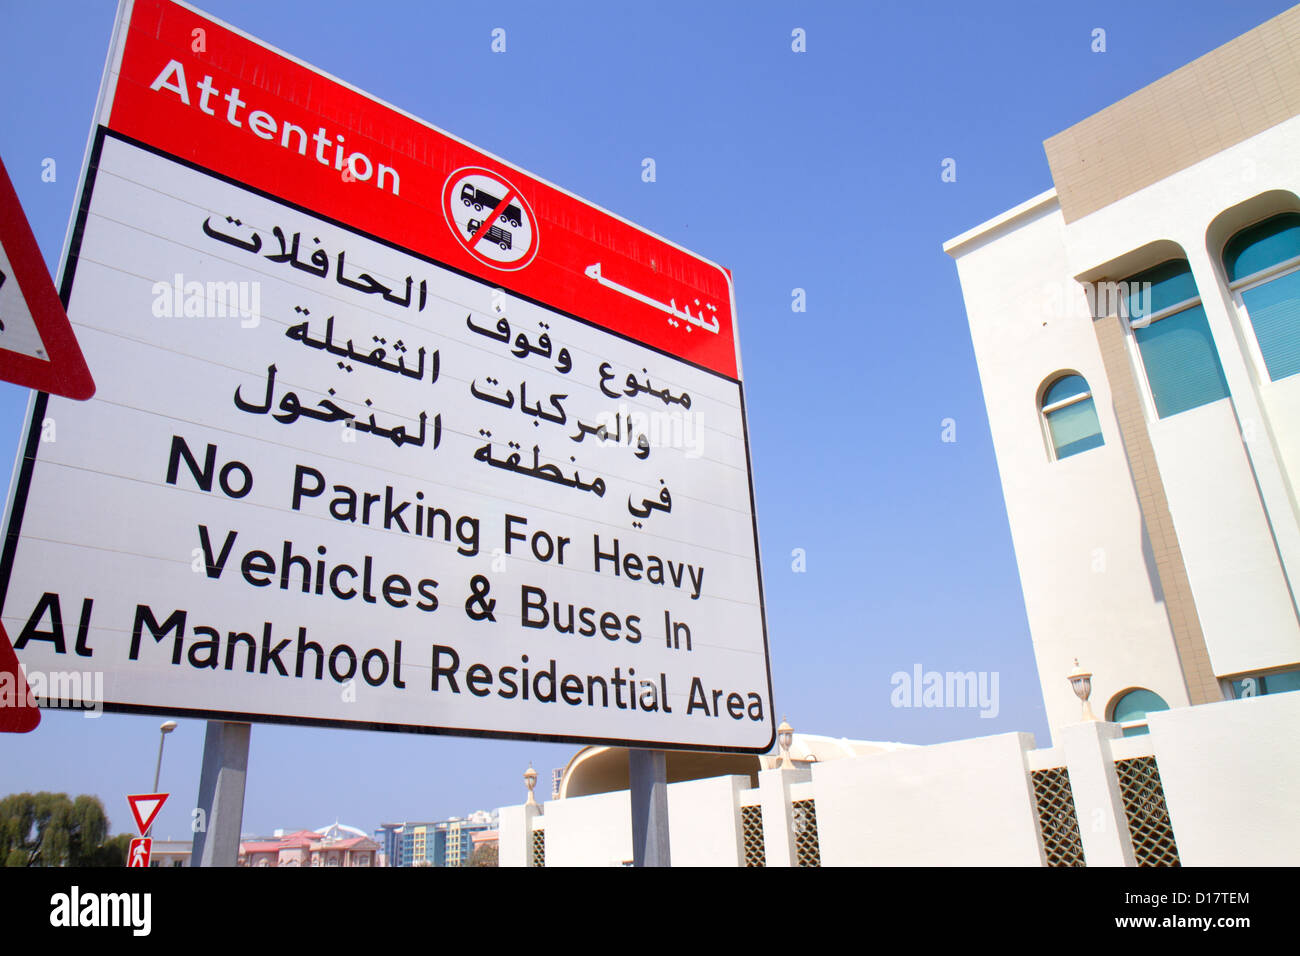 Dubai uae united arab emirates uae middle east bur dubai al dubai uae united arab emirates uae middle east bur dubai al mankhool english arabic language no heavy vehicle bus parking sig altavistaventures Image collections